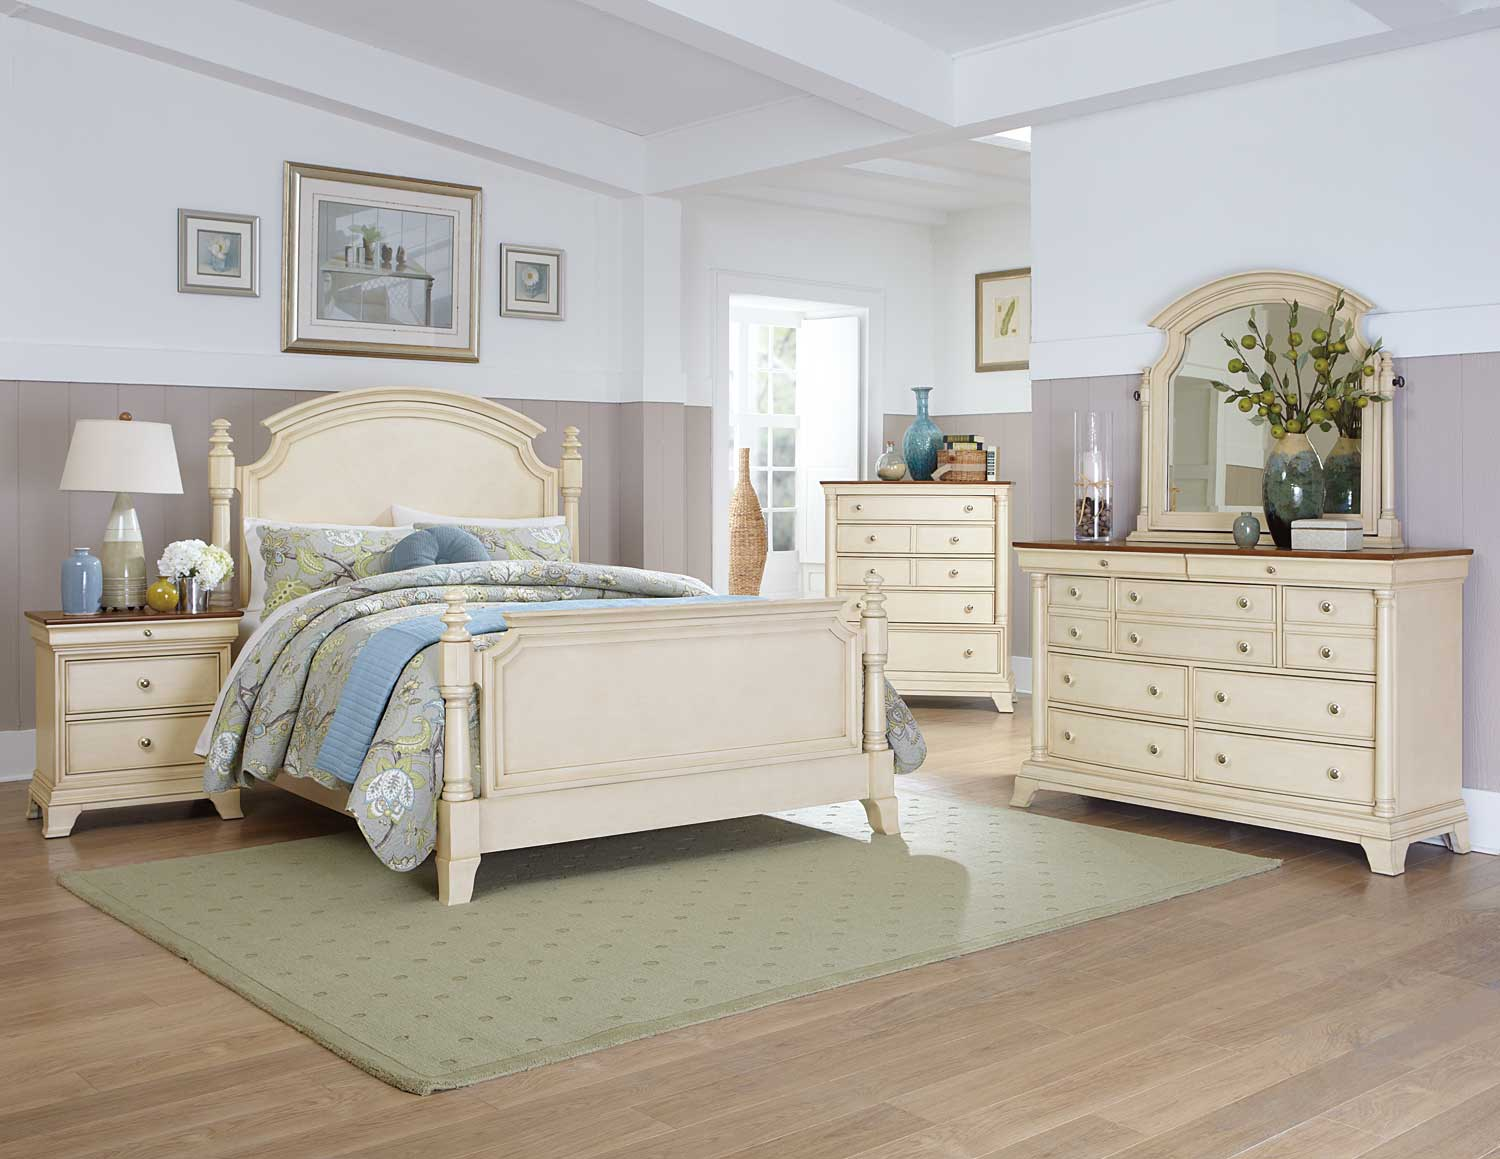 Homelegance inglewood ii bedroom set white b1402w bed for Bedroom furniture